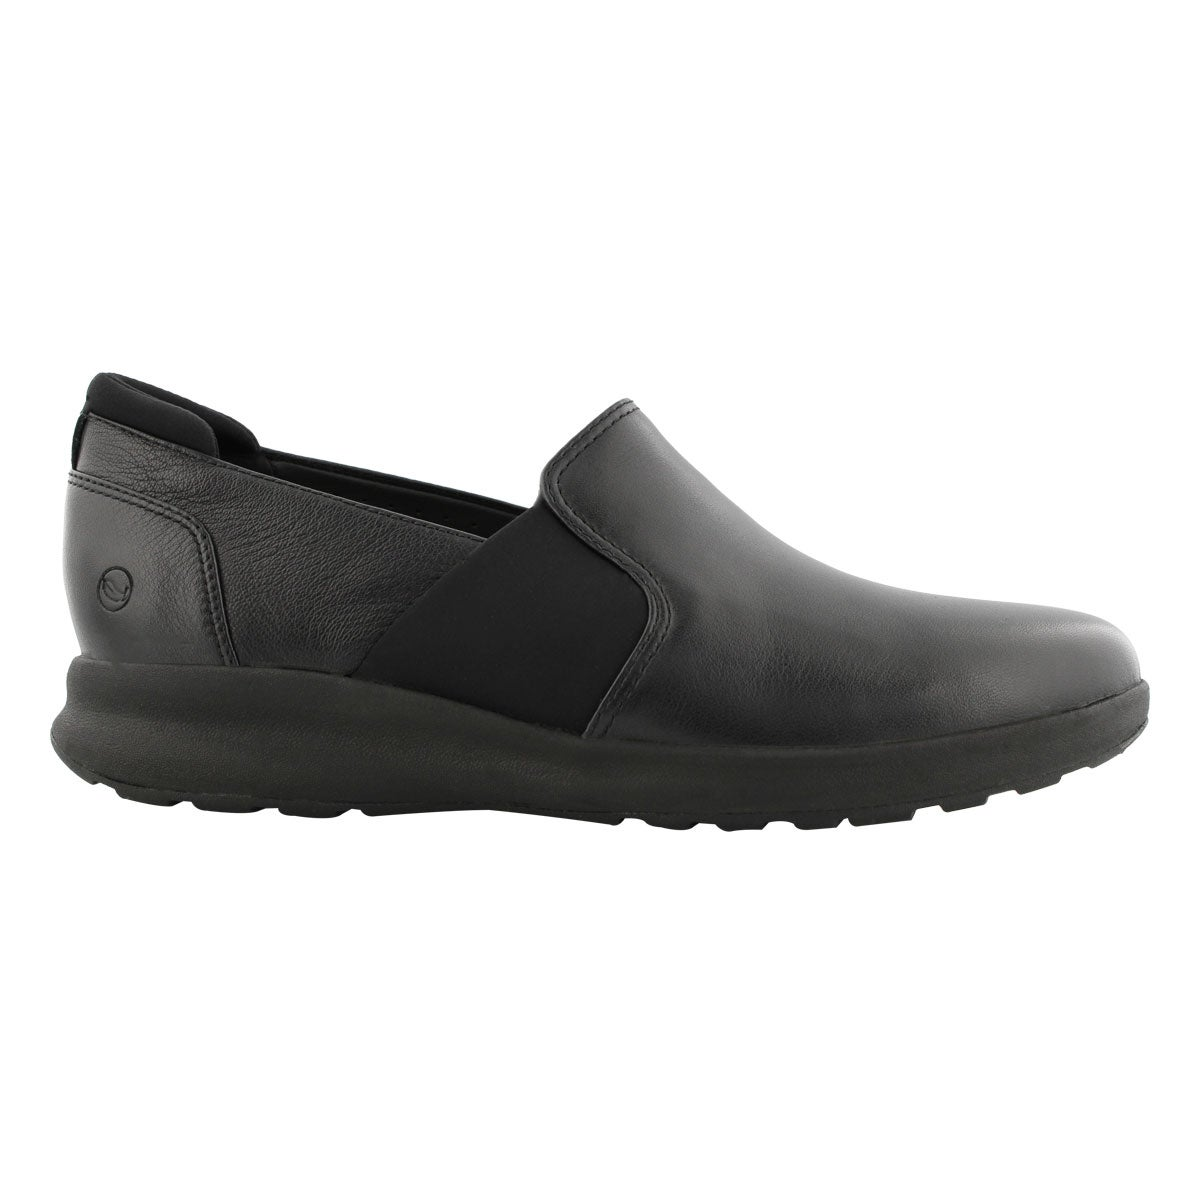 Lds Un Adorn Step black lthr slip on